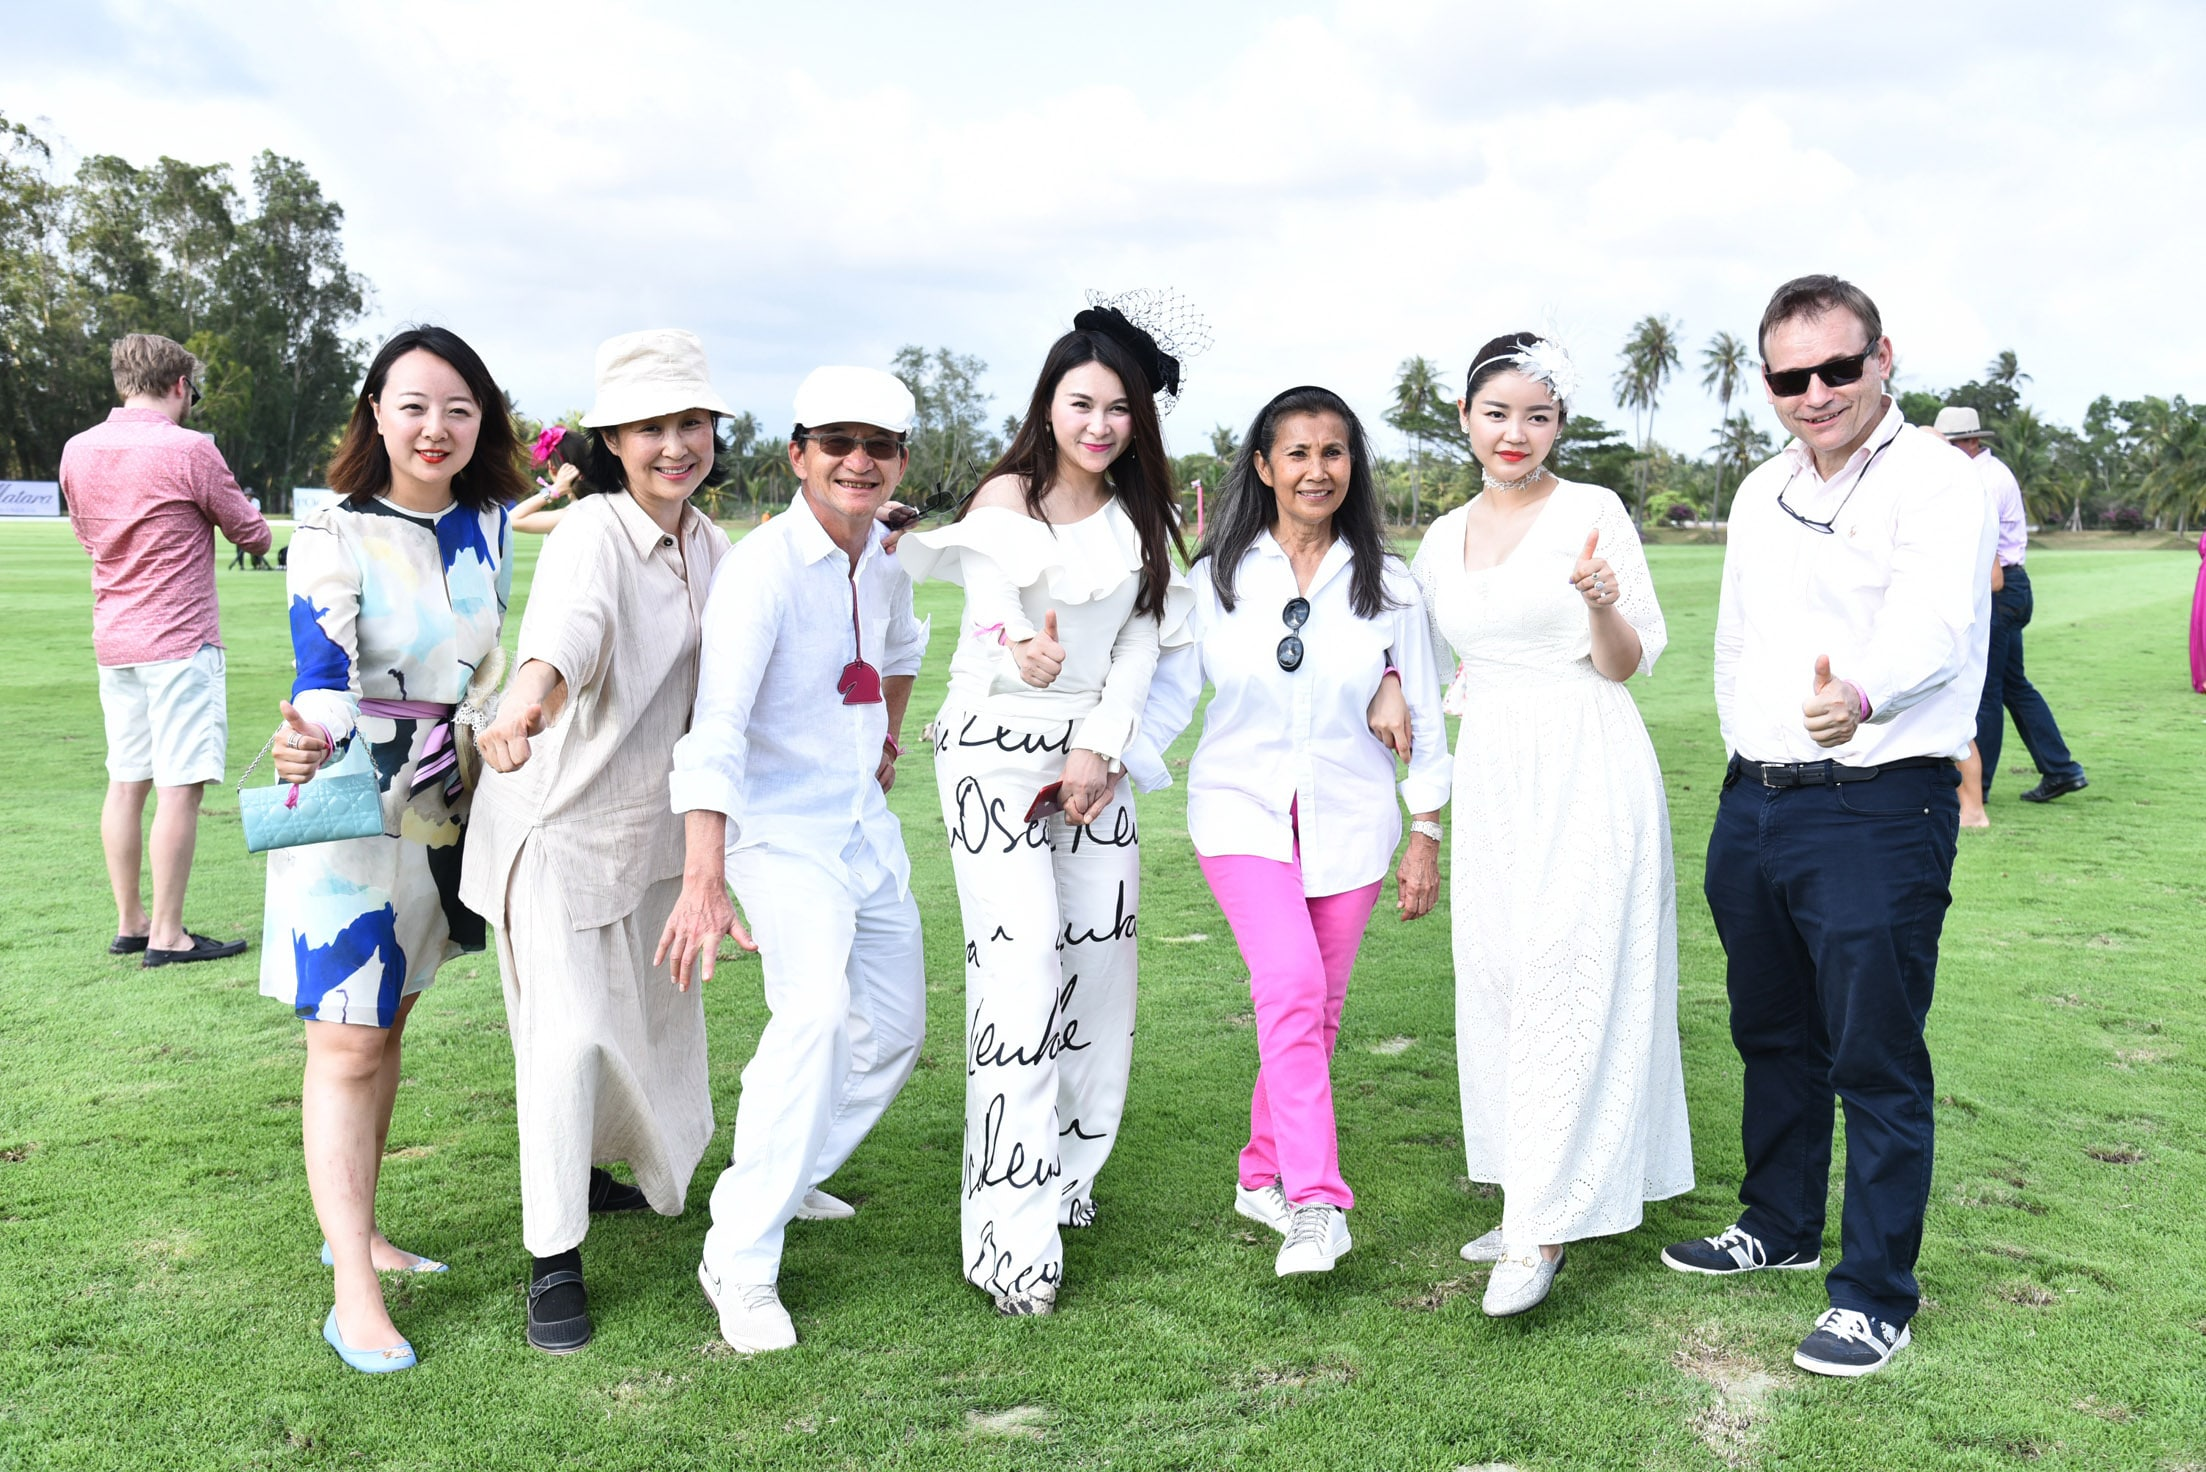 H.E.Georg Schmidt (first right) and Nunthinee Tanner (third right) are seen with 1003 Polo Team fans from China during the divot stomping session